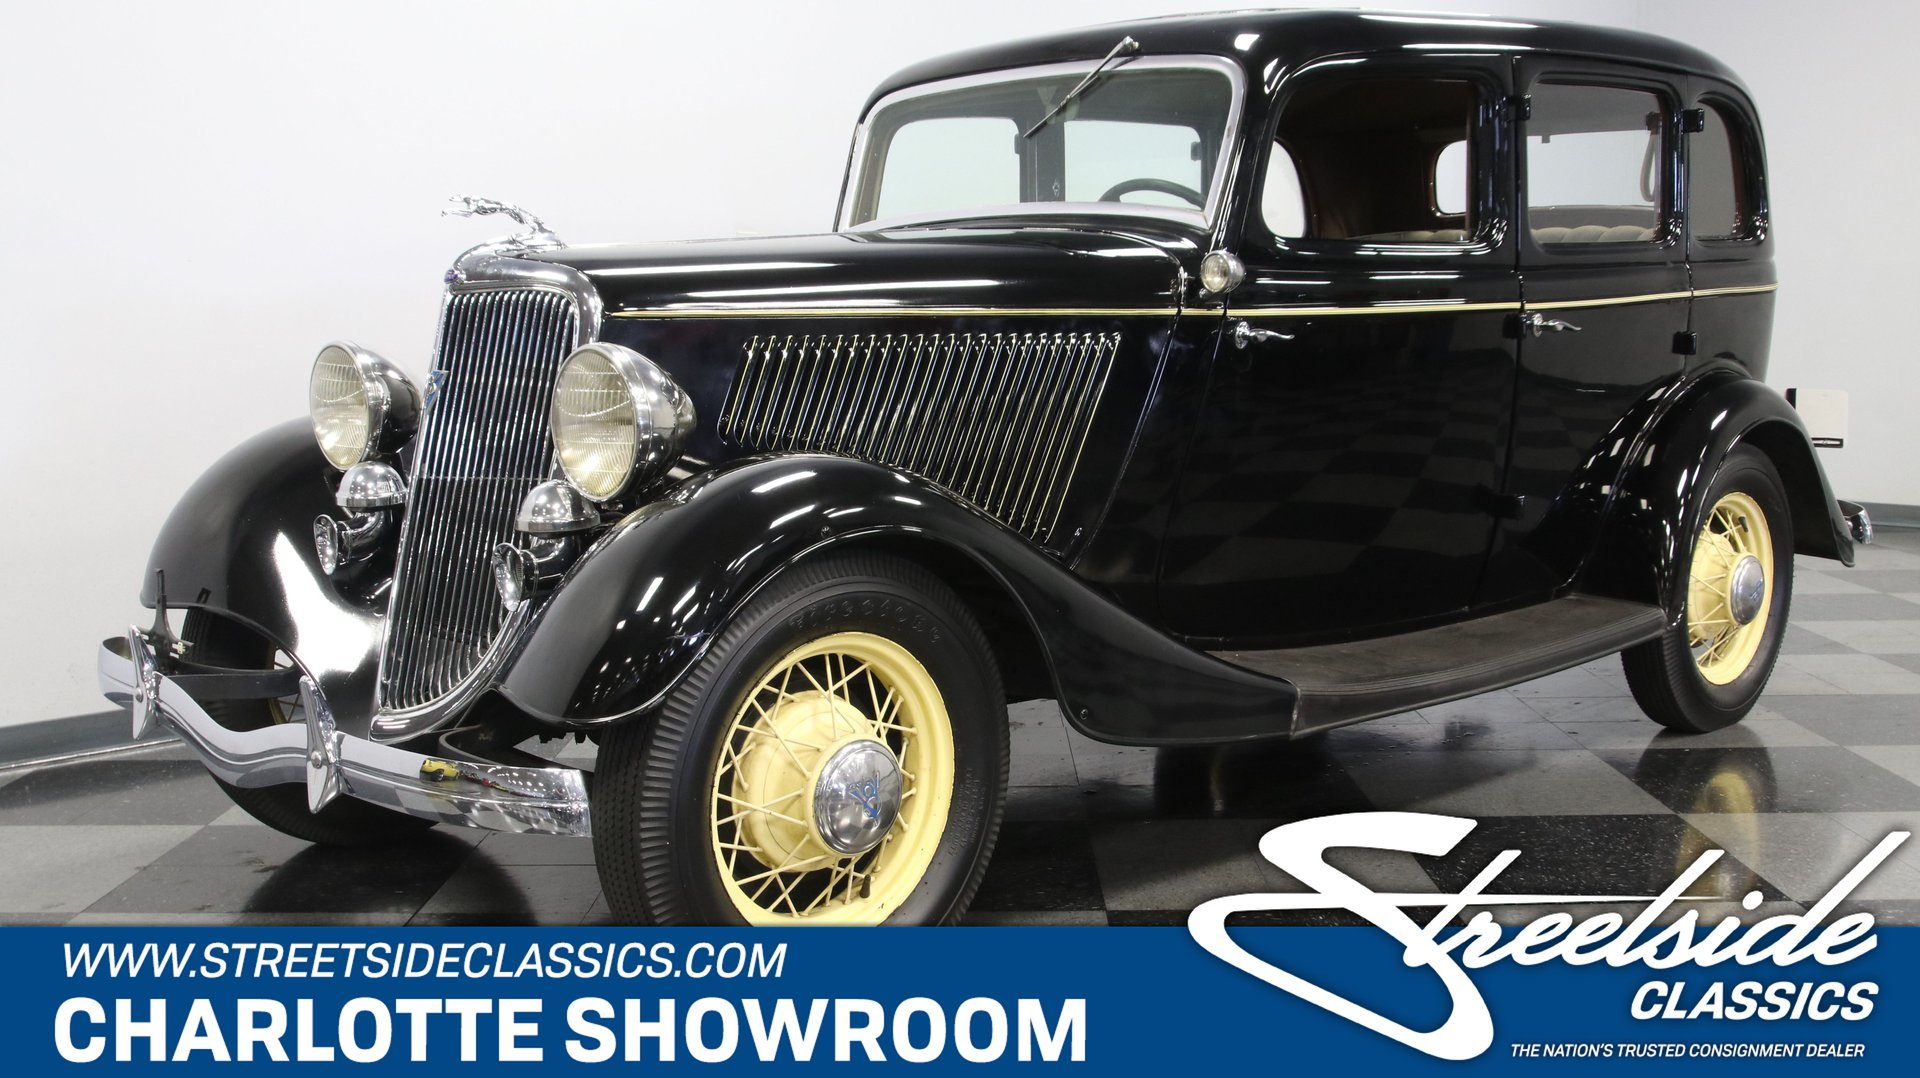 Ford v8 bonnie & clyde 1934 1932 Ford